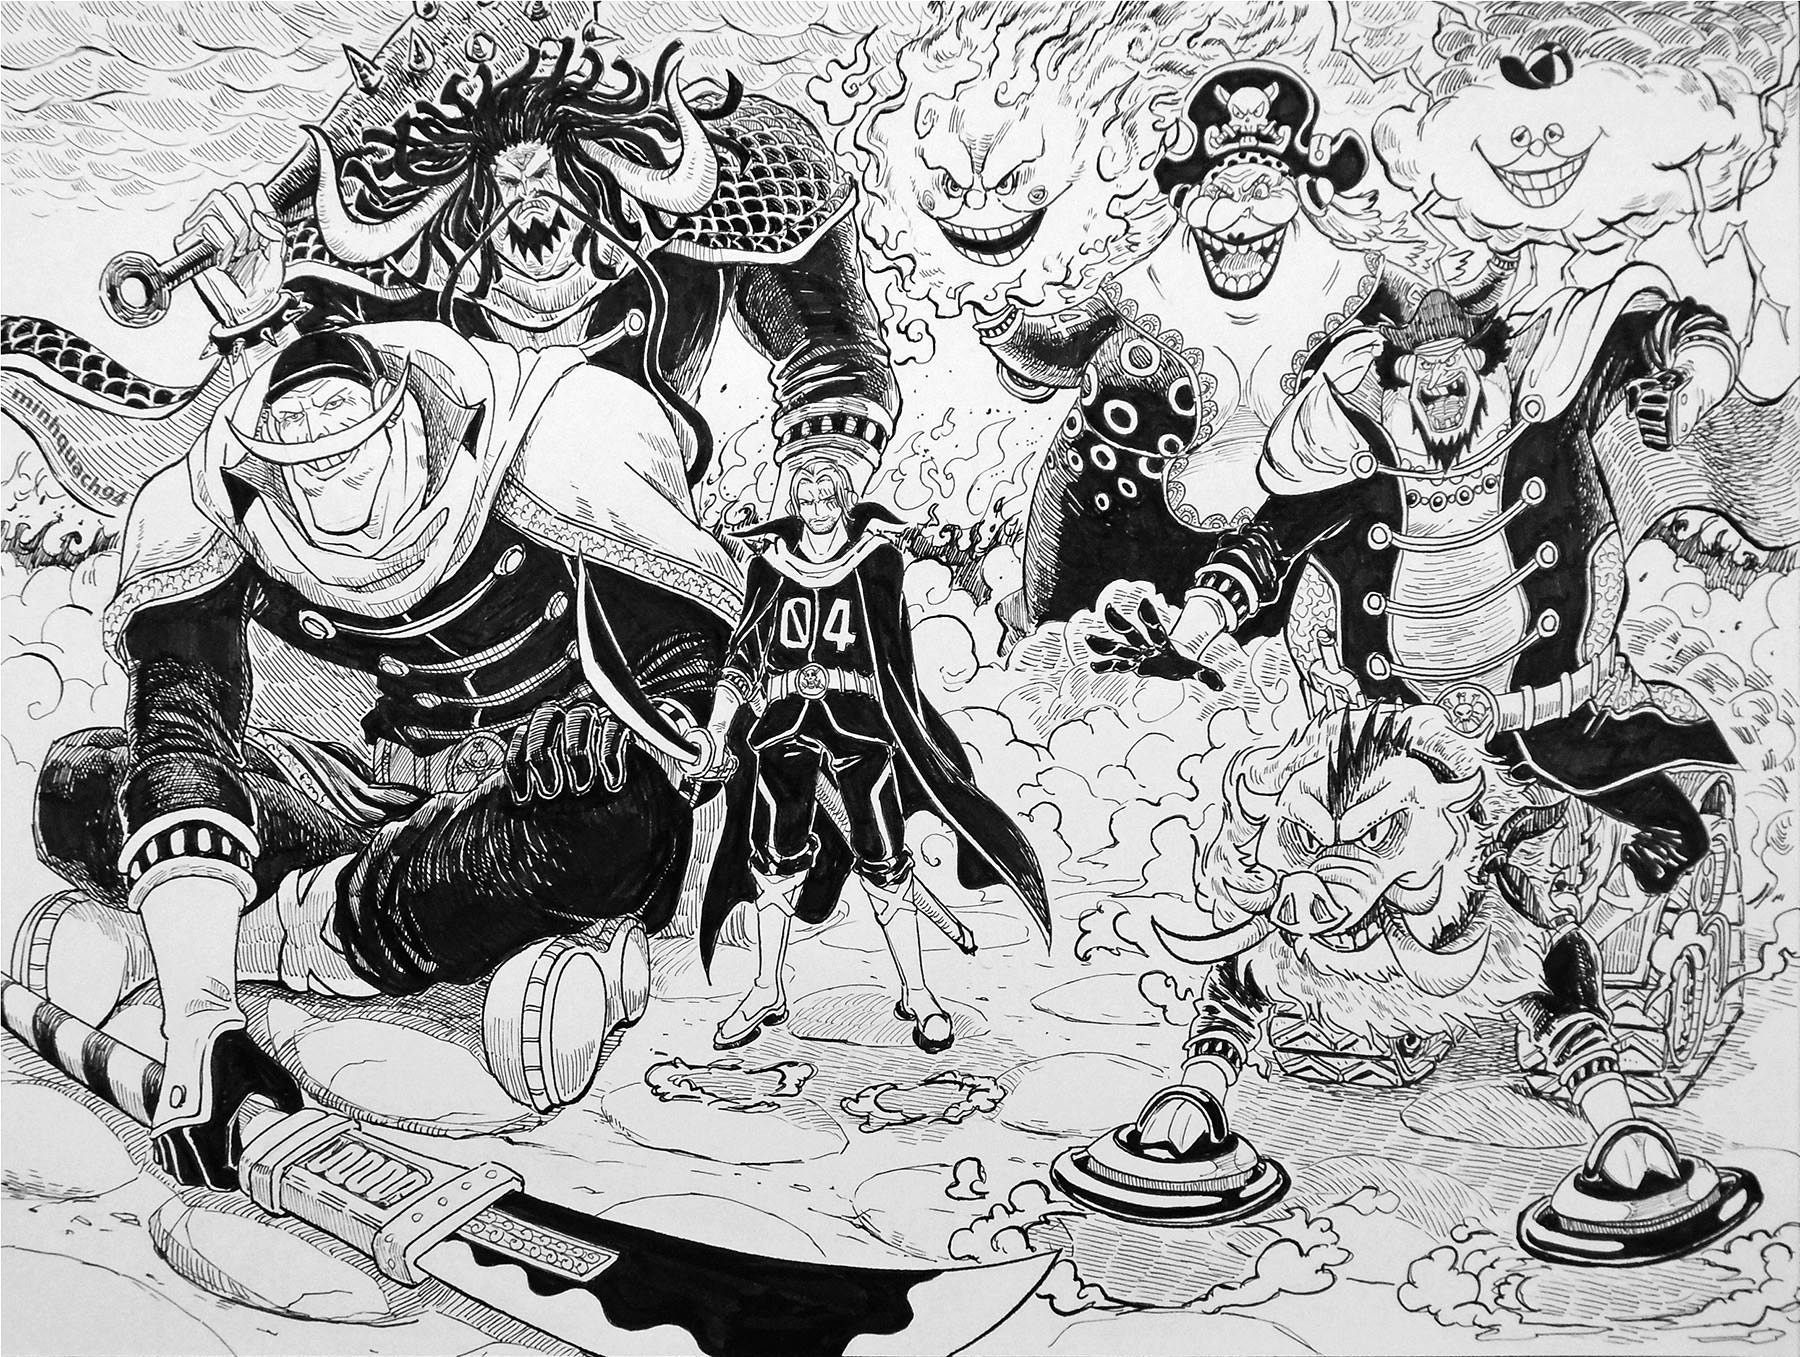 One Piece Chapter 875 A Woman S Honor Manga Mangafreak Onepiece Updated Chapter At Mangafreak One Piece Manga One Piece Anime One Piece Chapter